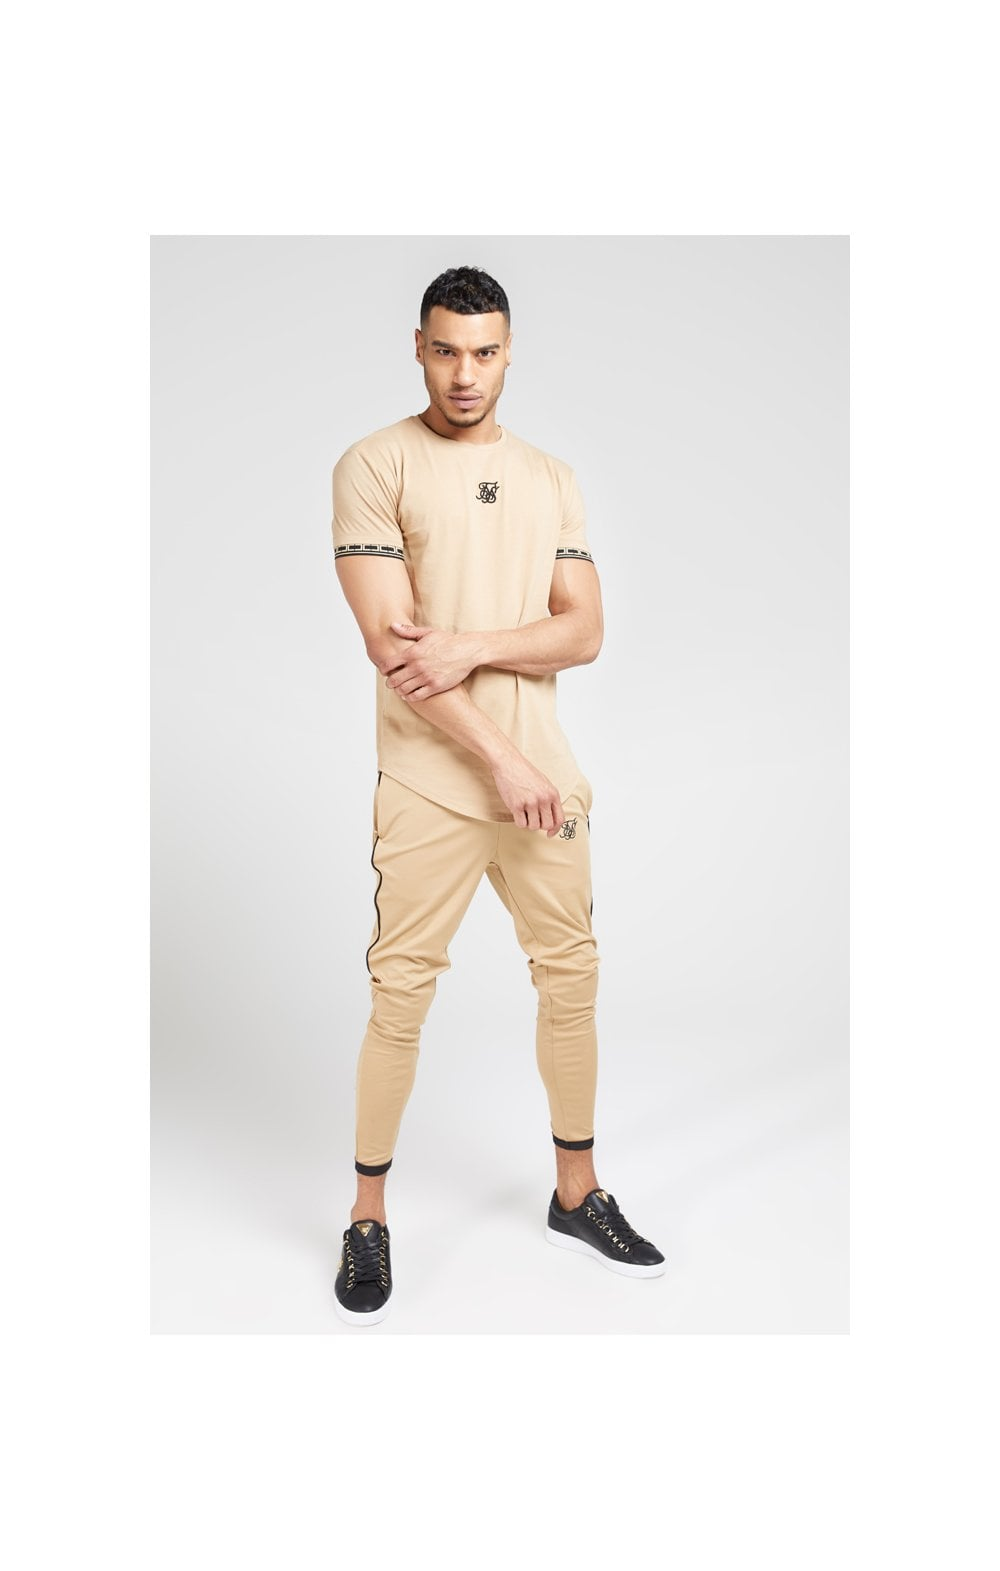 SikSilk S/S Scope Gym Tee – Beige (1)